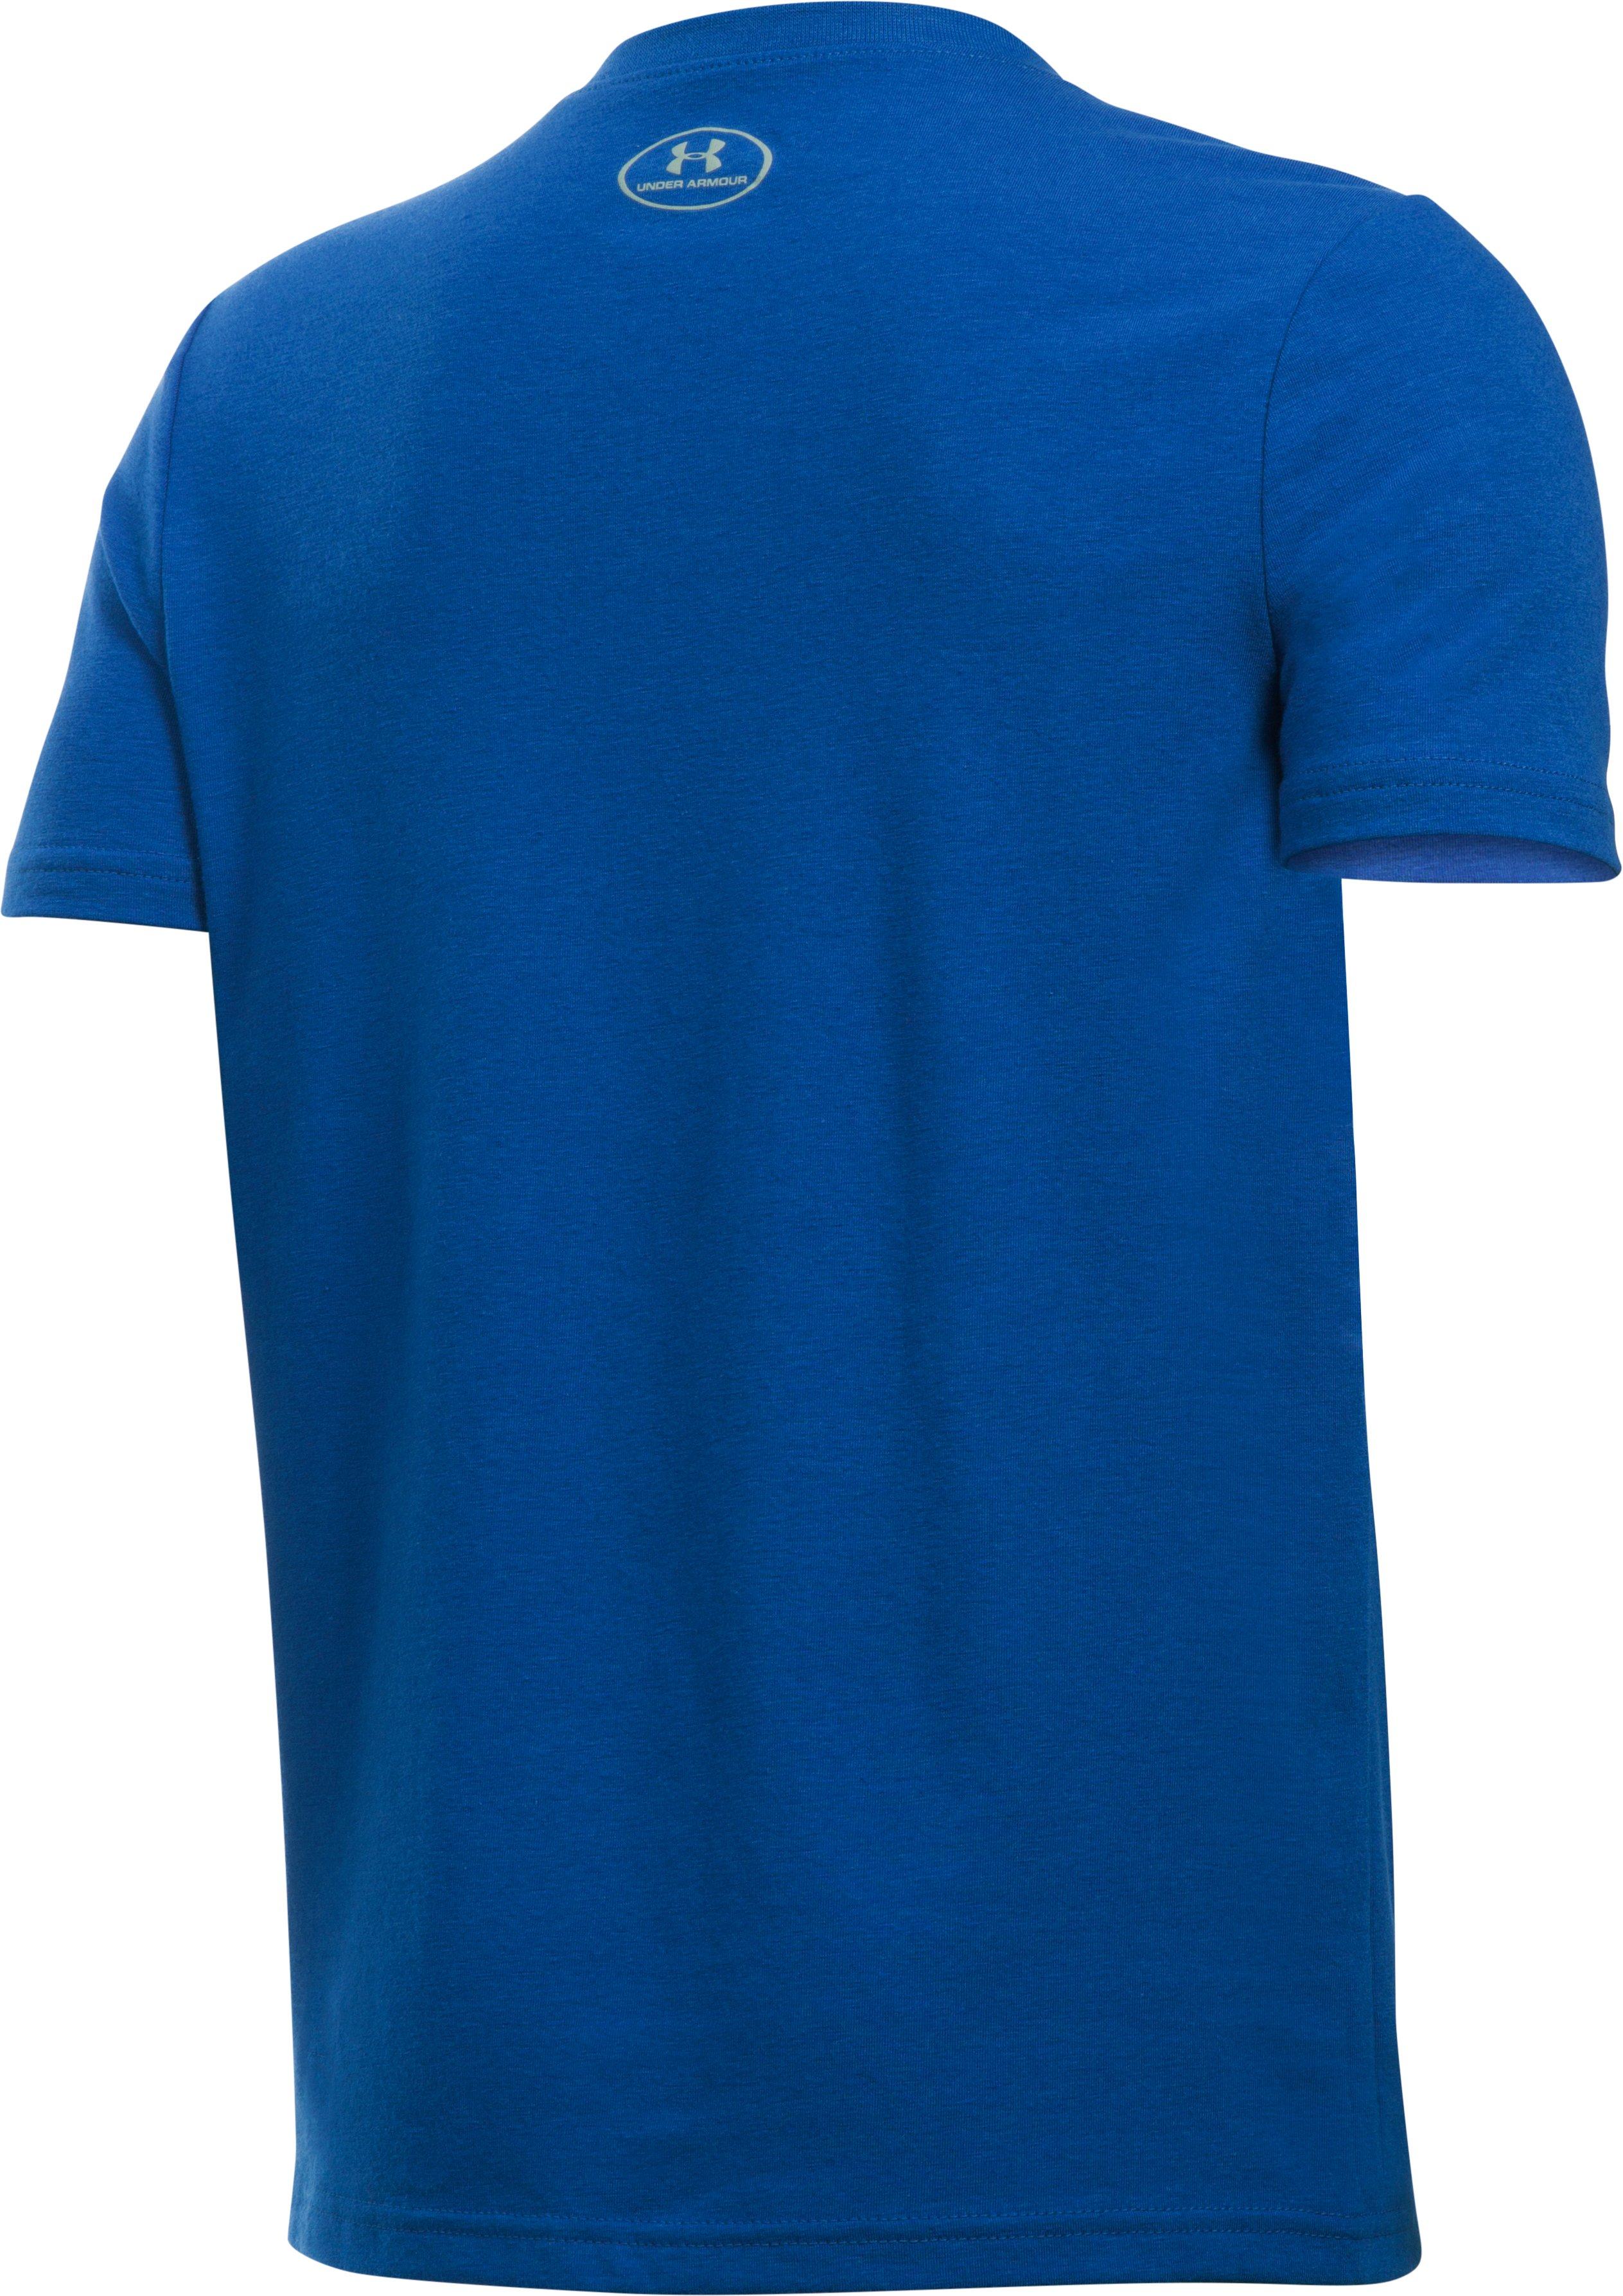 Boys' SC30 Made That Old T-Shirt, Royal, undefined